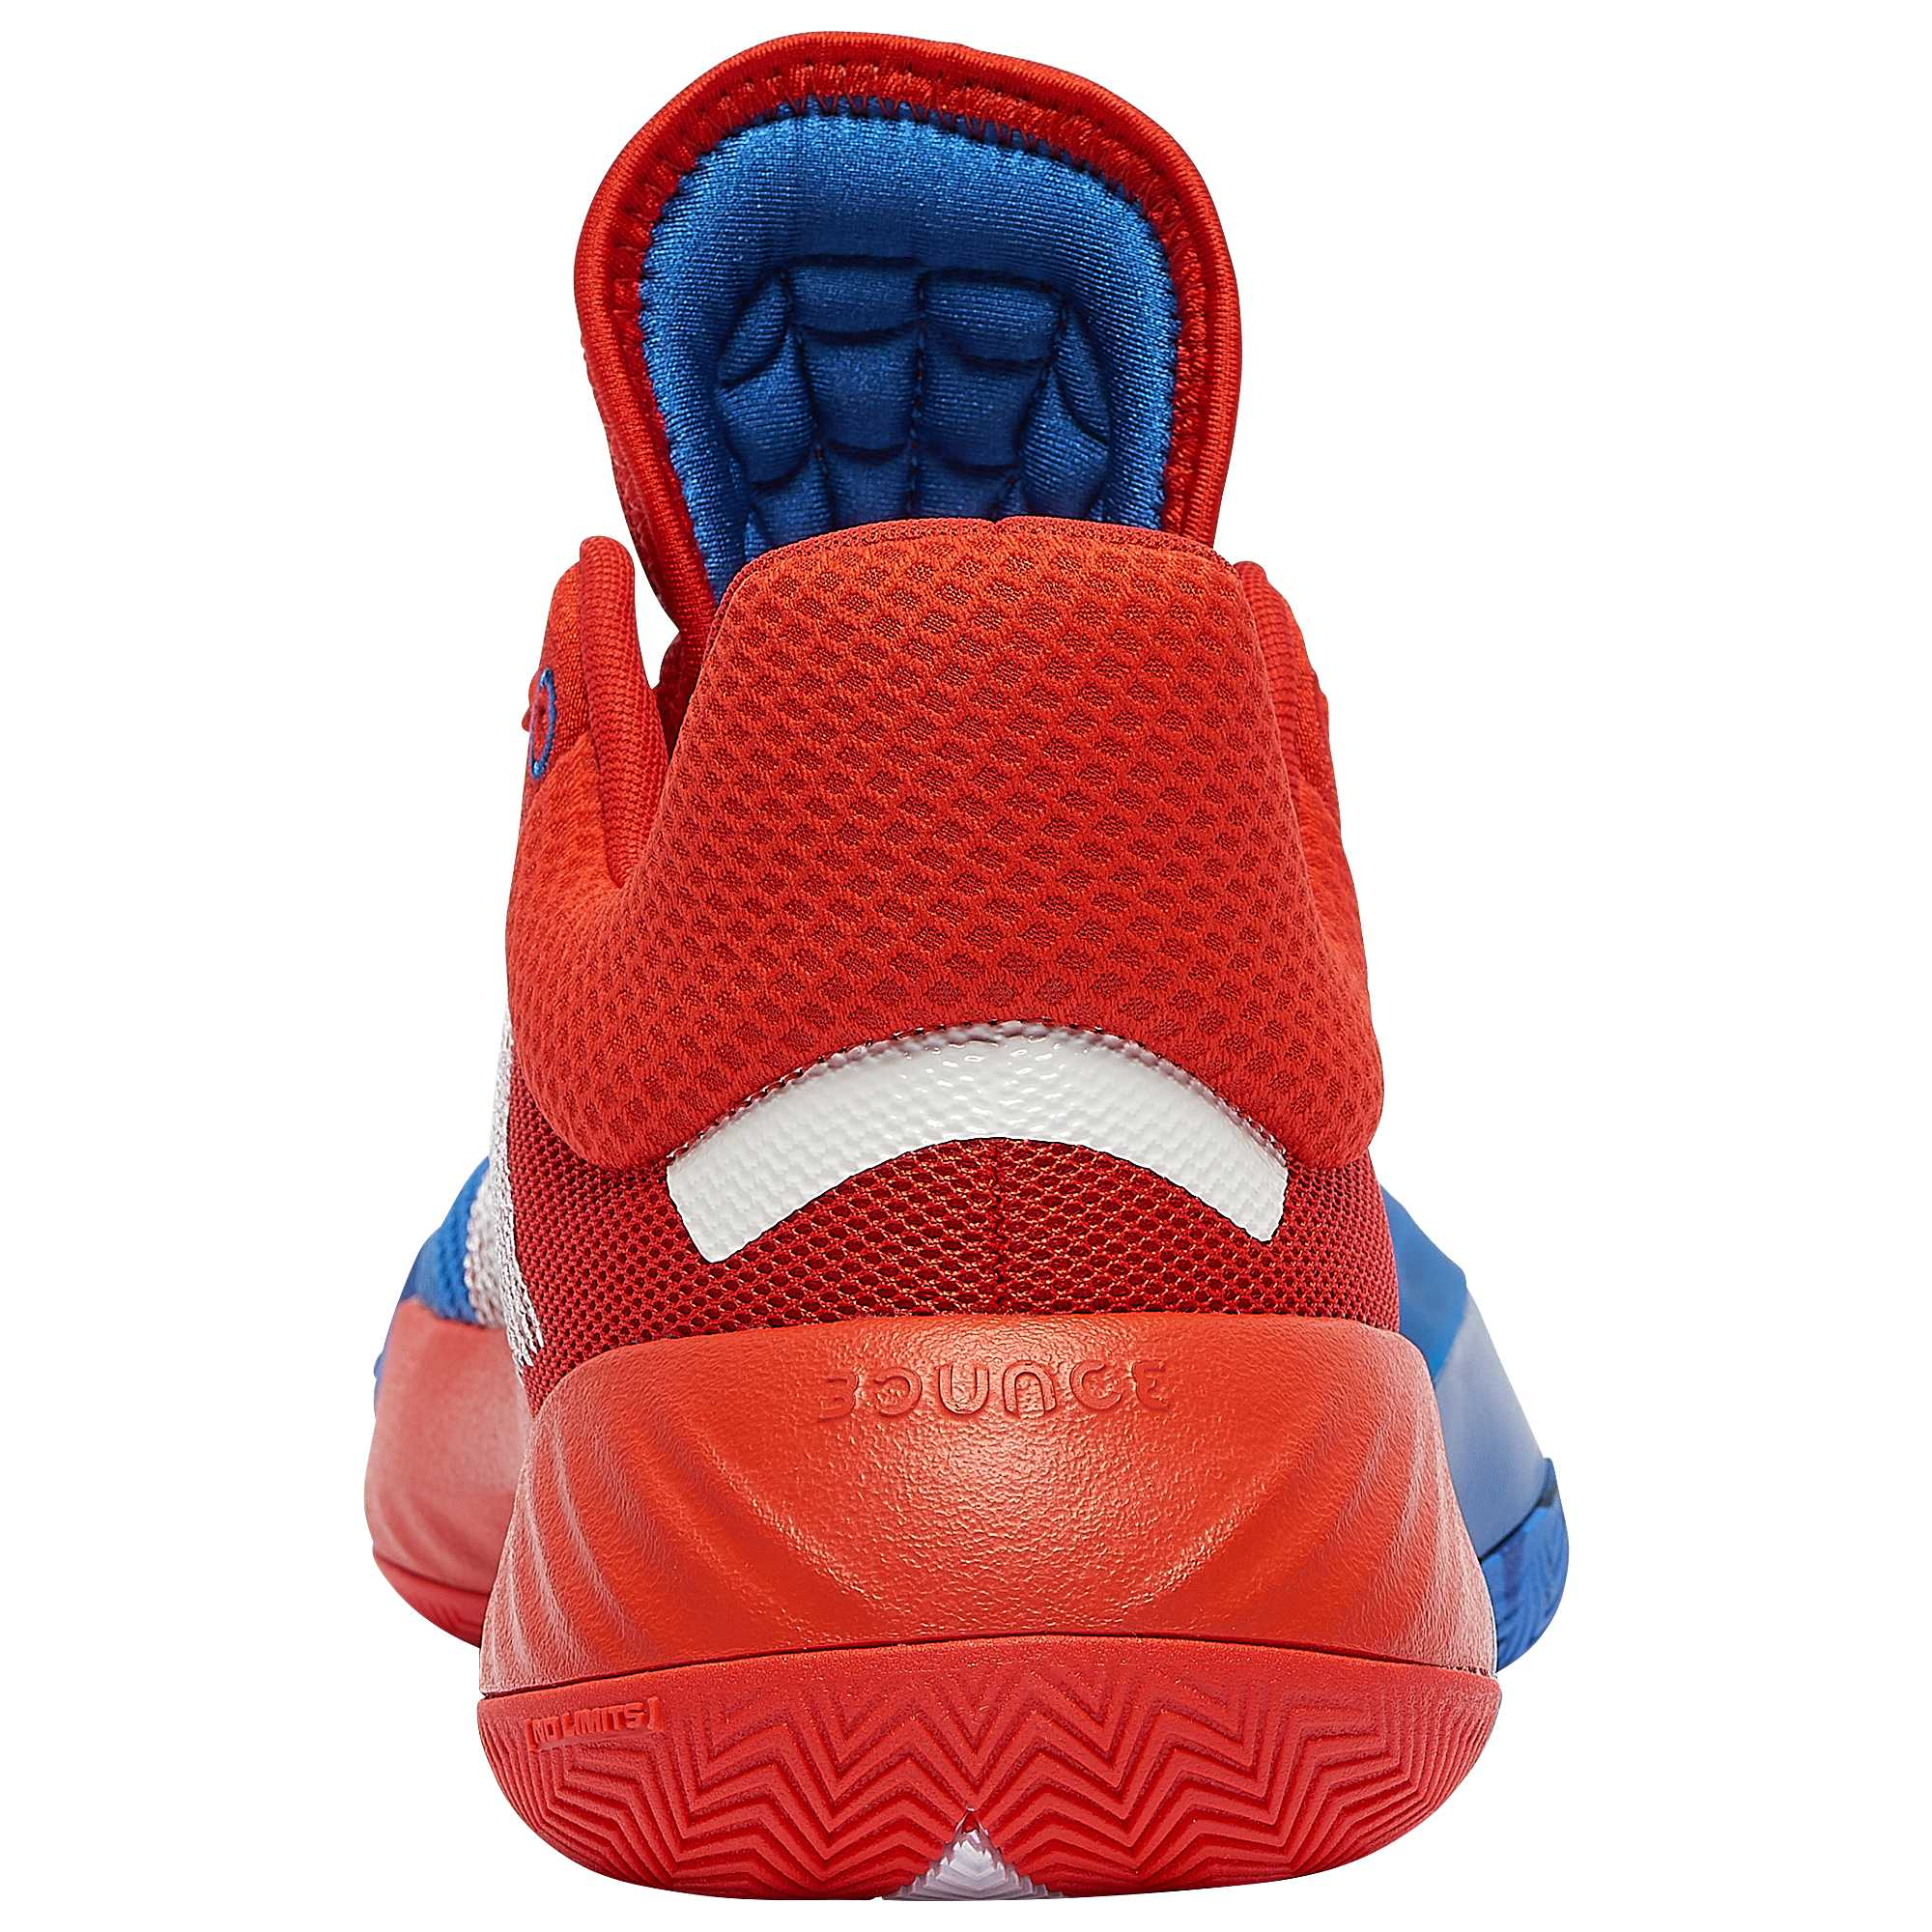 Adidas D.O.N. Issue 1 Blue Red White Release Date EF2400 Heel